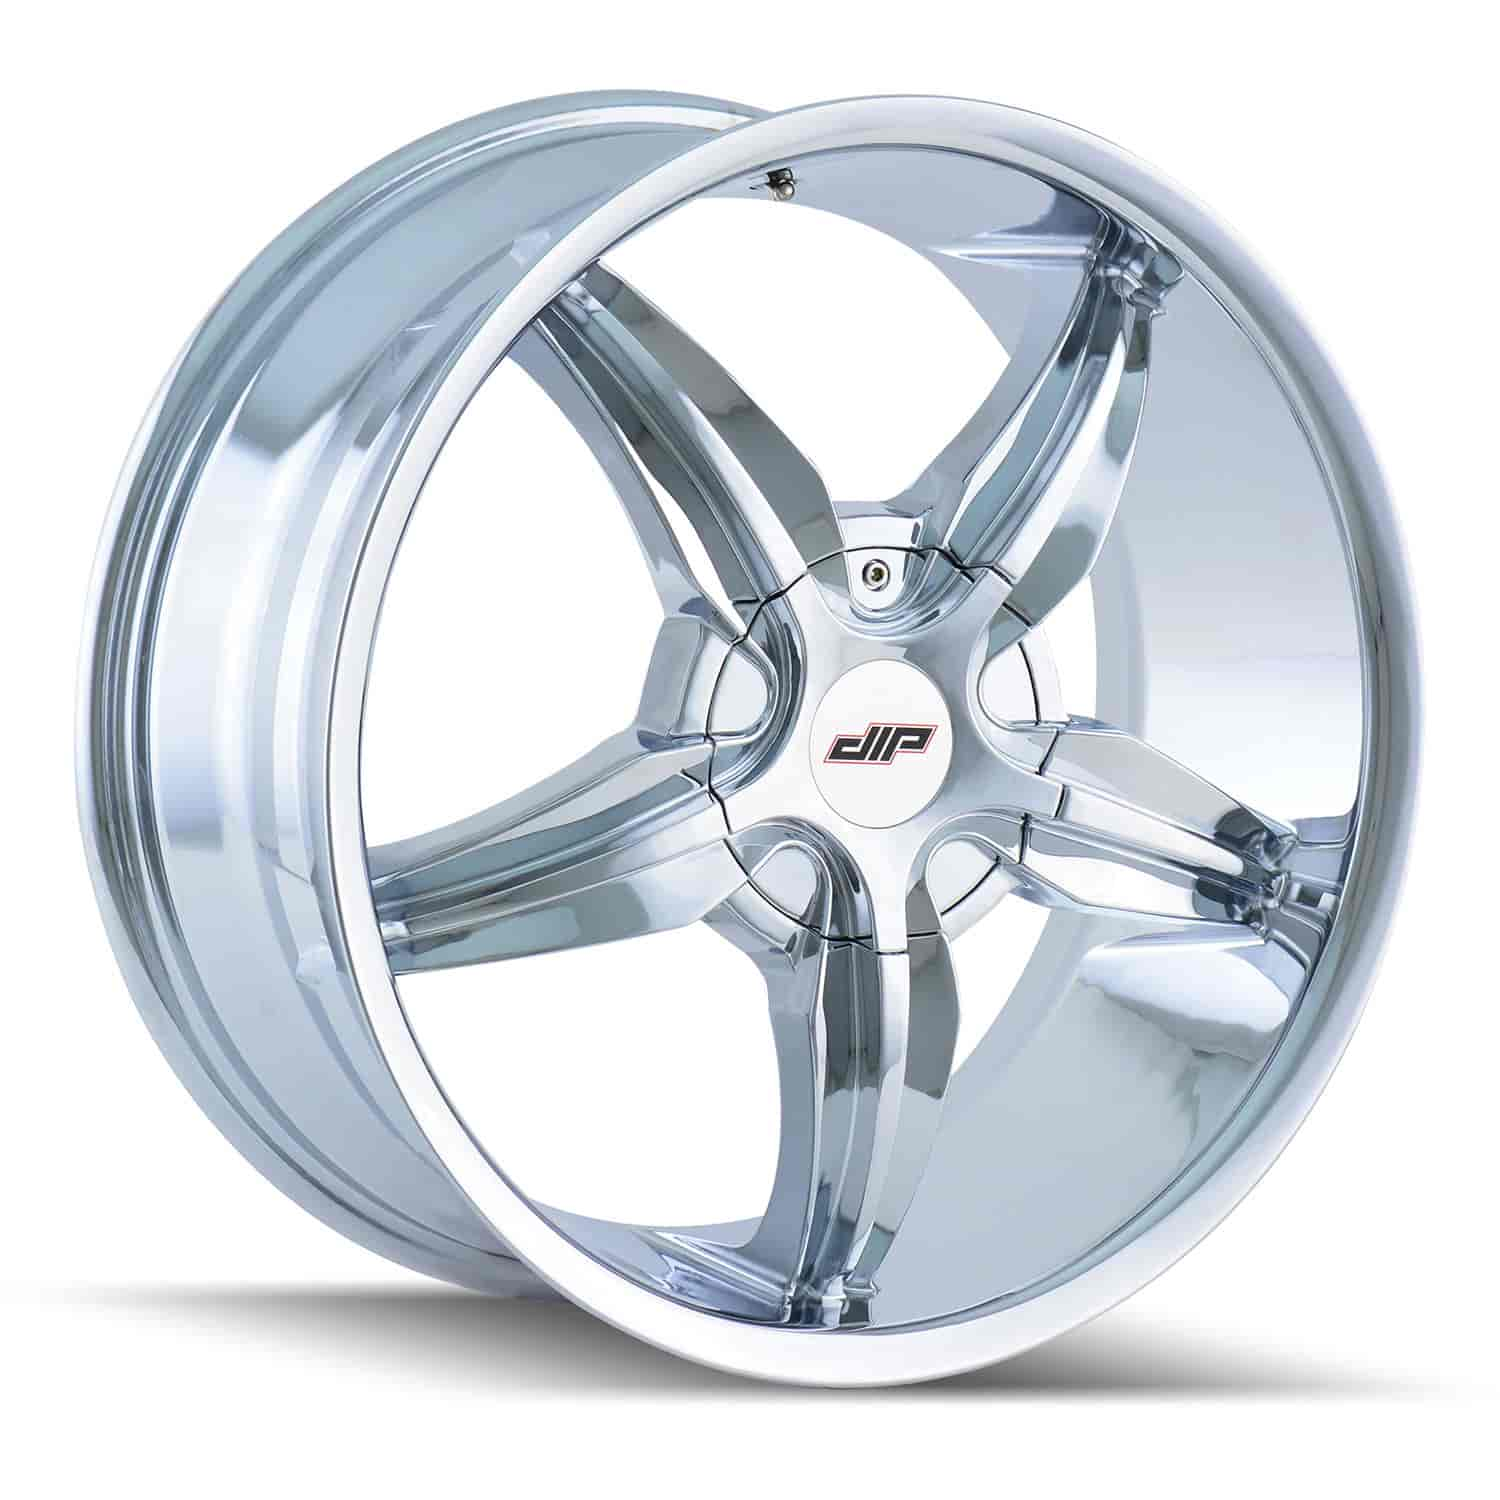 The Wheel Group D35-8709C